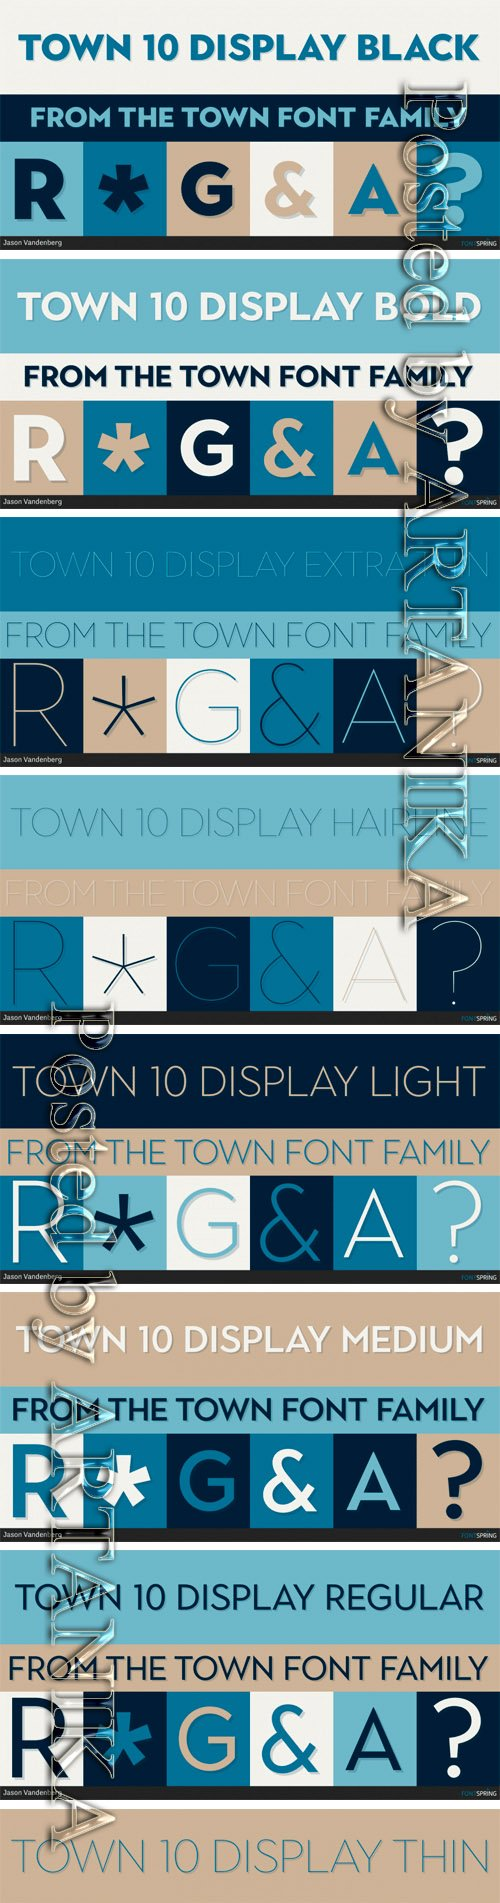 Town 10 Display Font Family